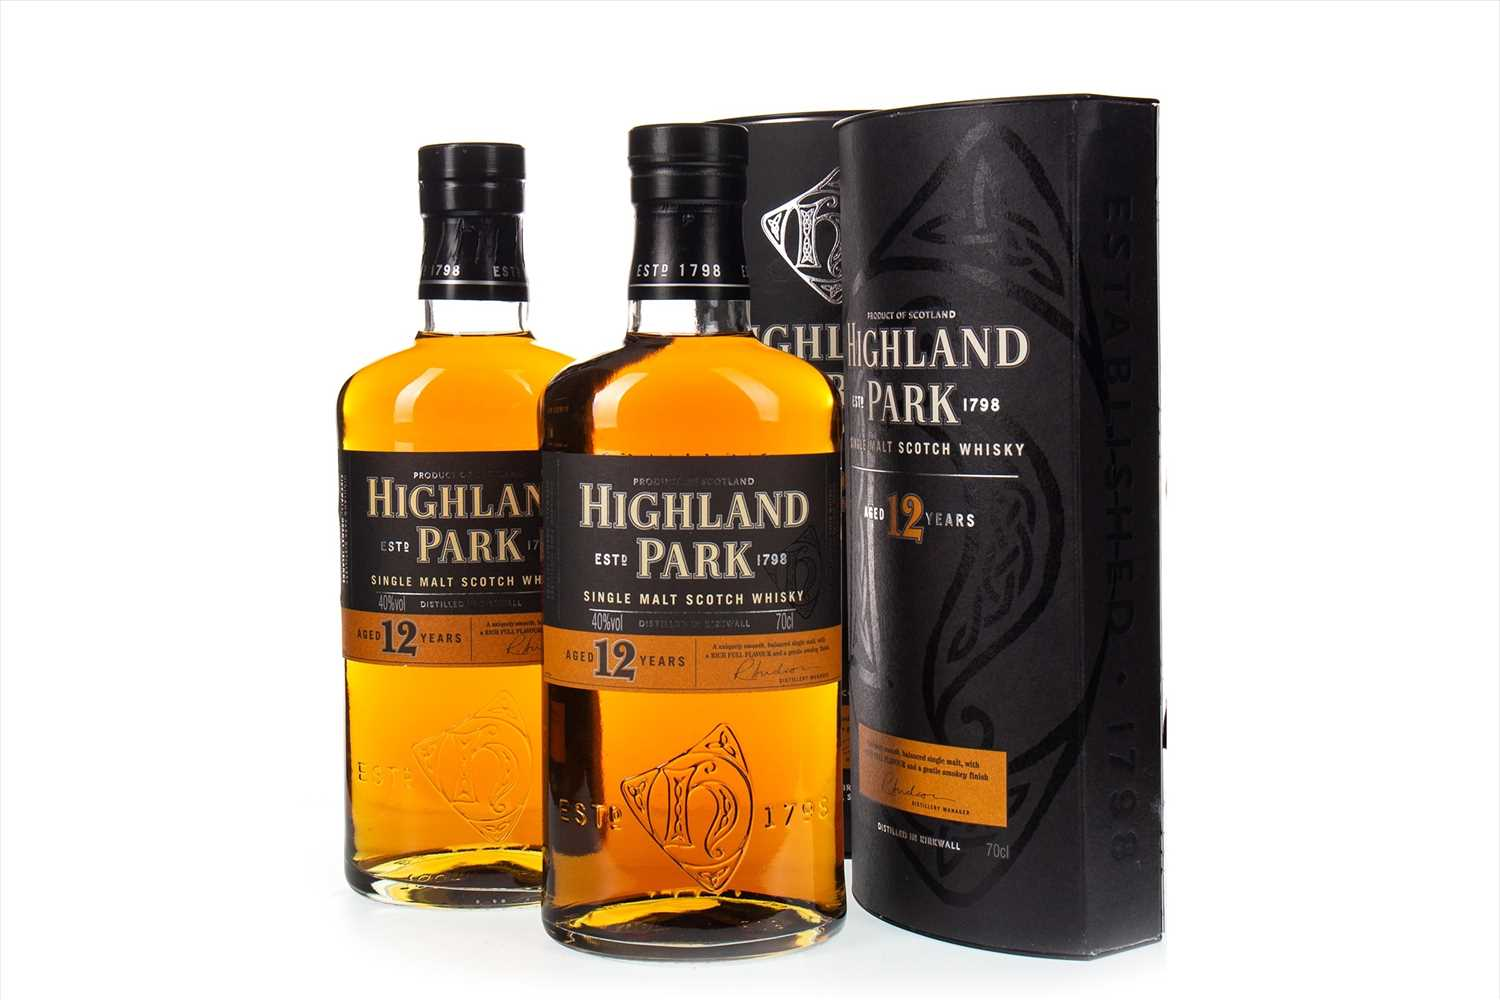 Lot 325-TWO BOTTLES OF HIGHLAND PARK AGED 12 YEARS